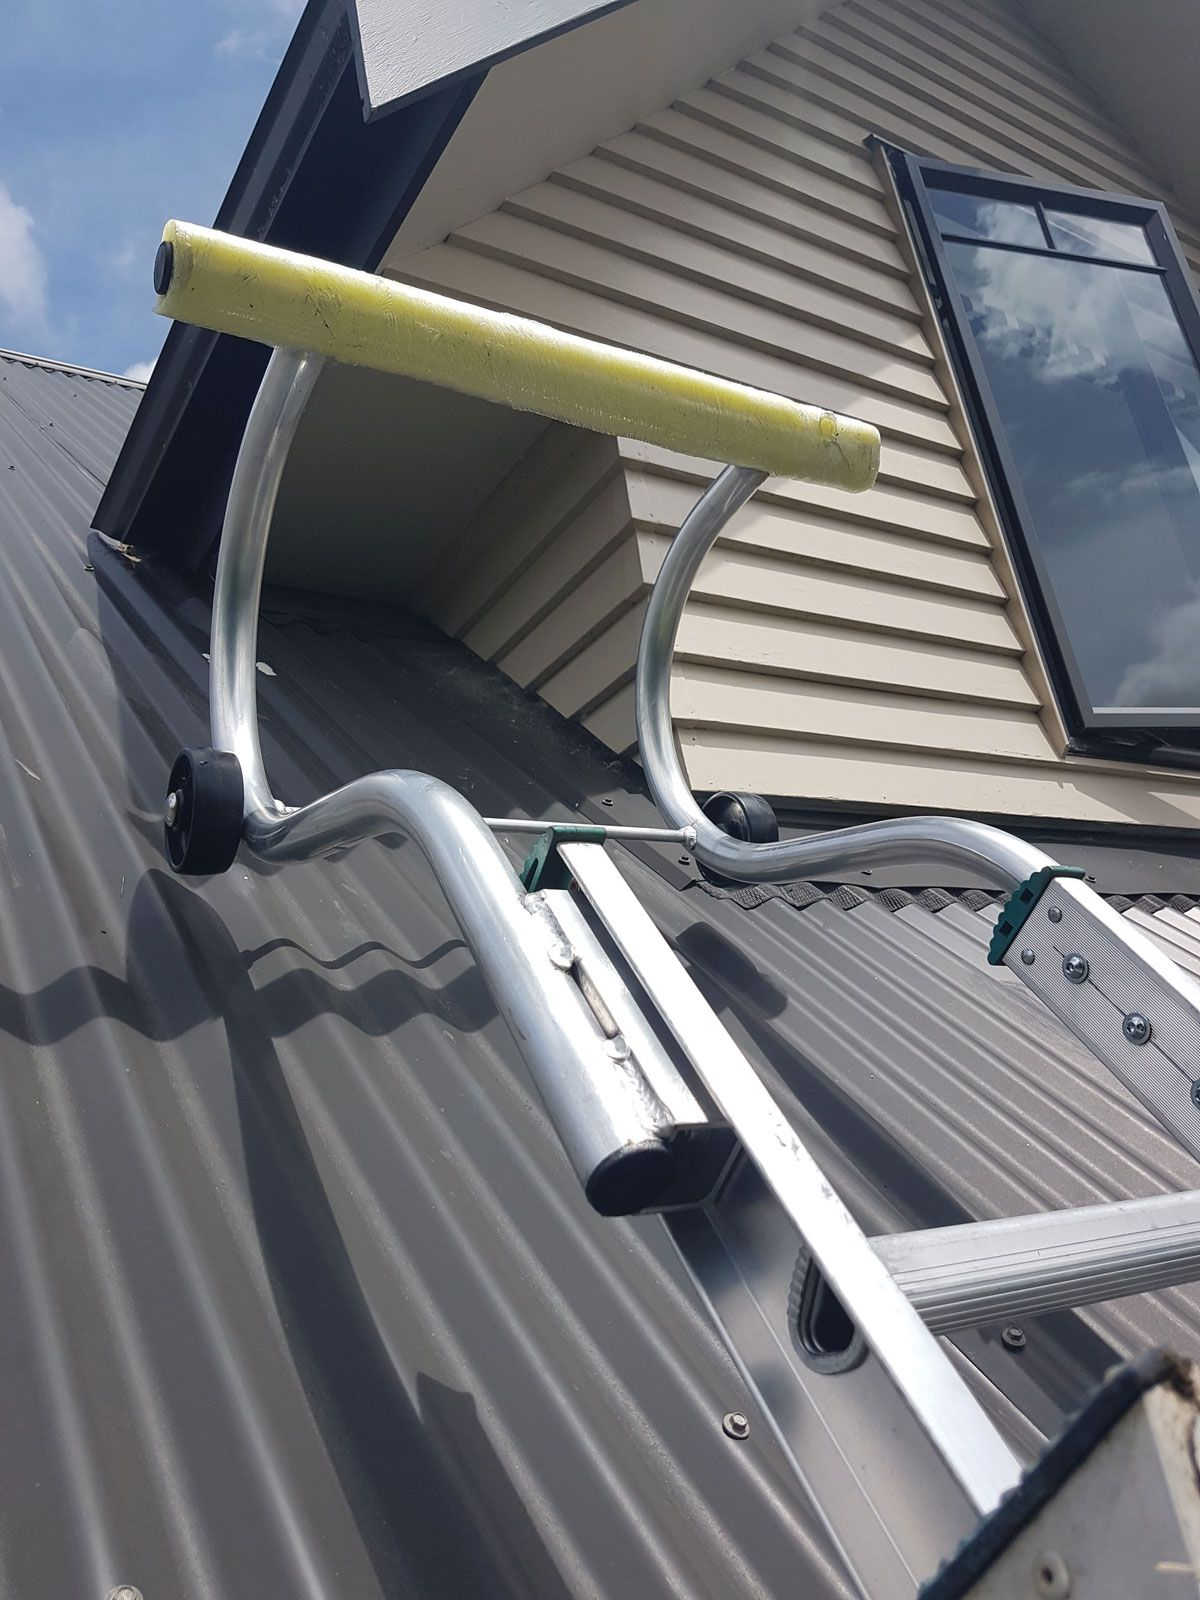 Roof Ladders Roof Ladder Roof Paint Roof